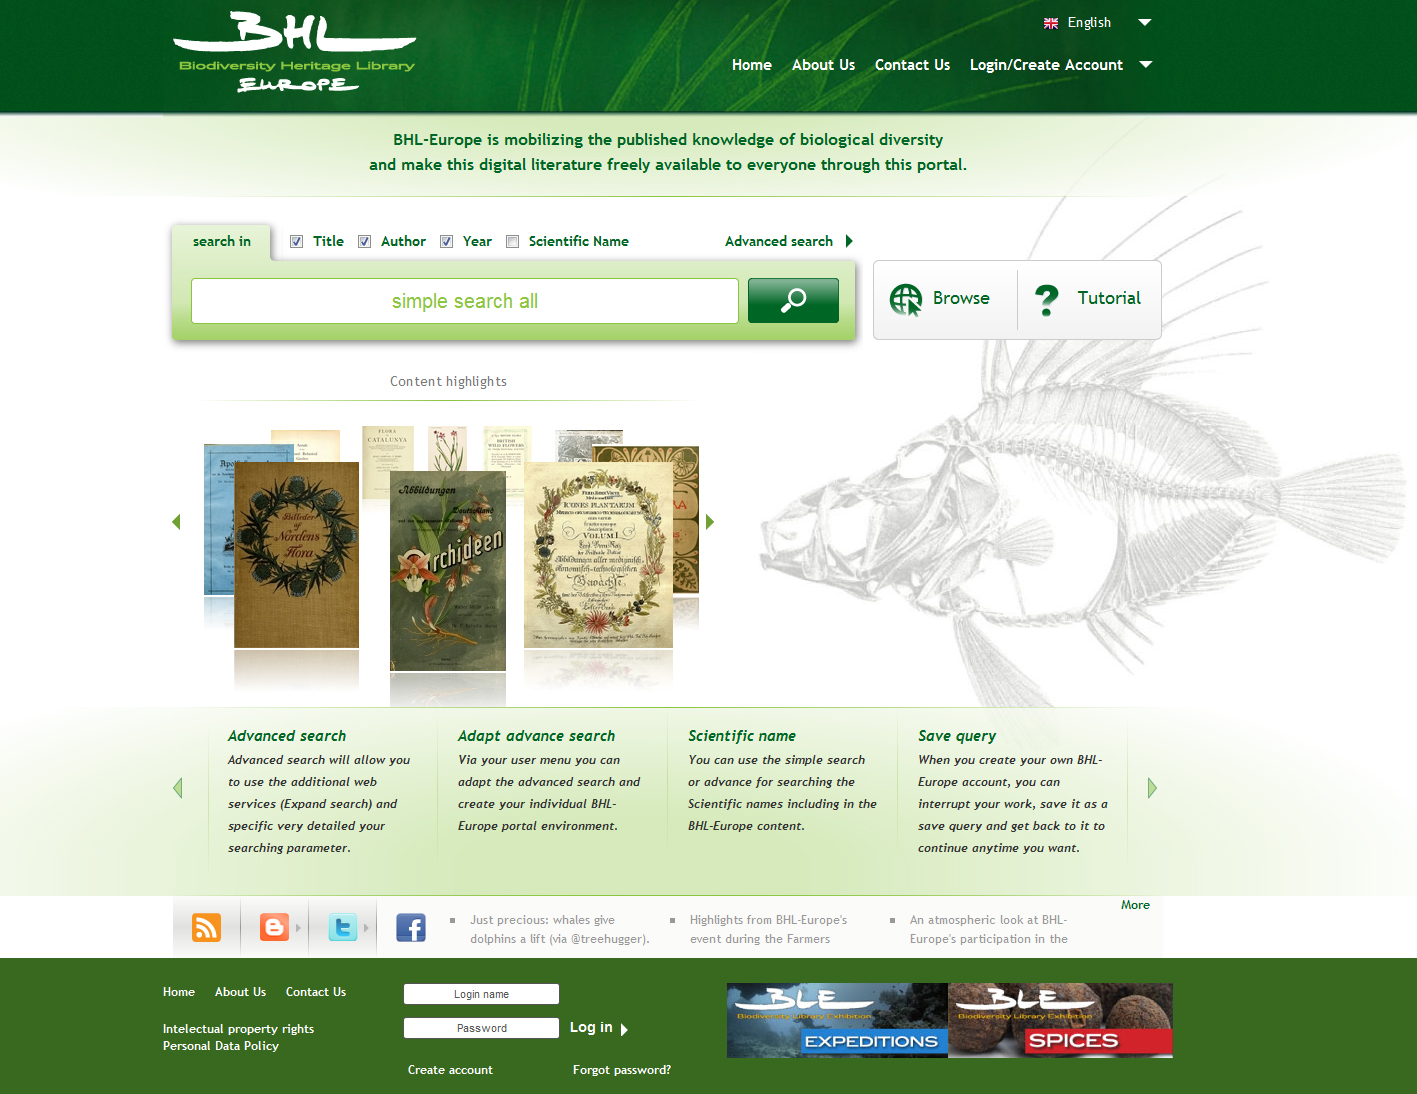 The BHL-Europe portal front page